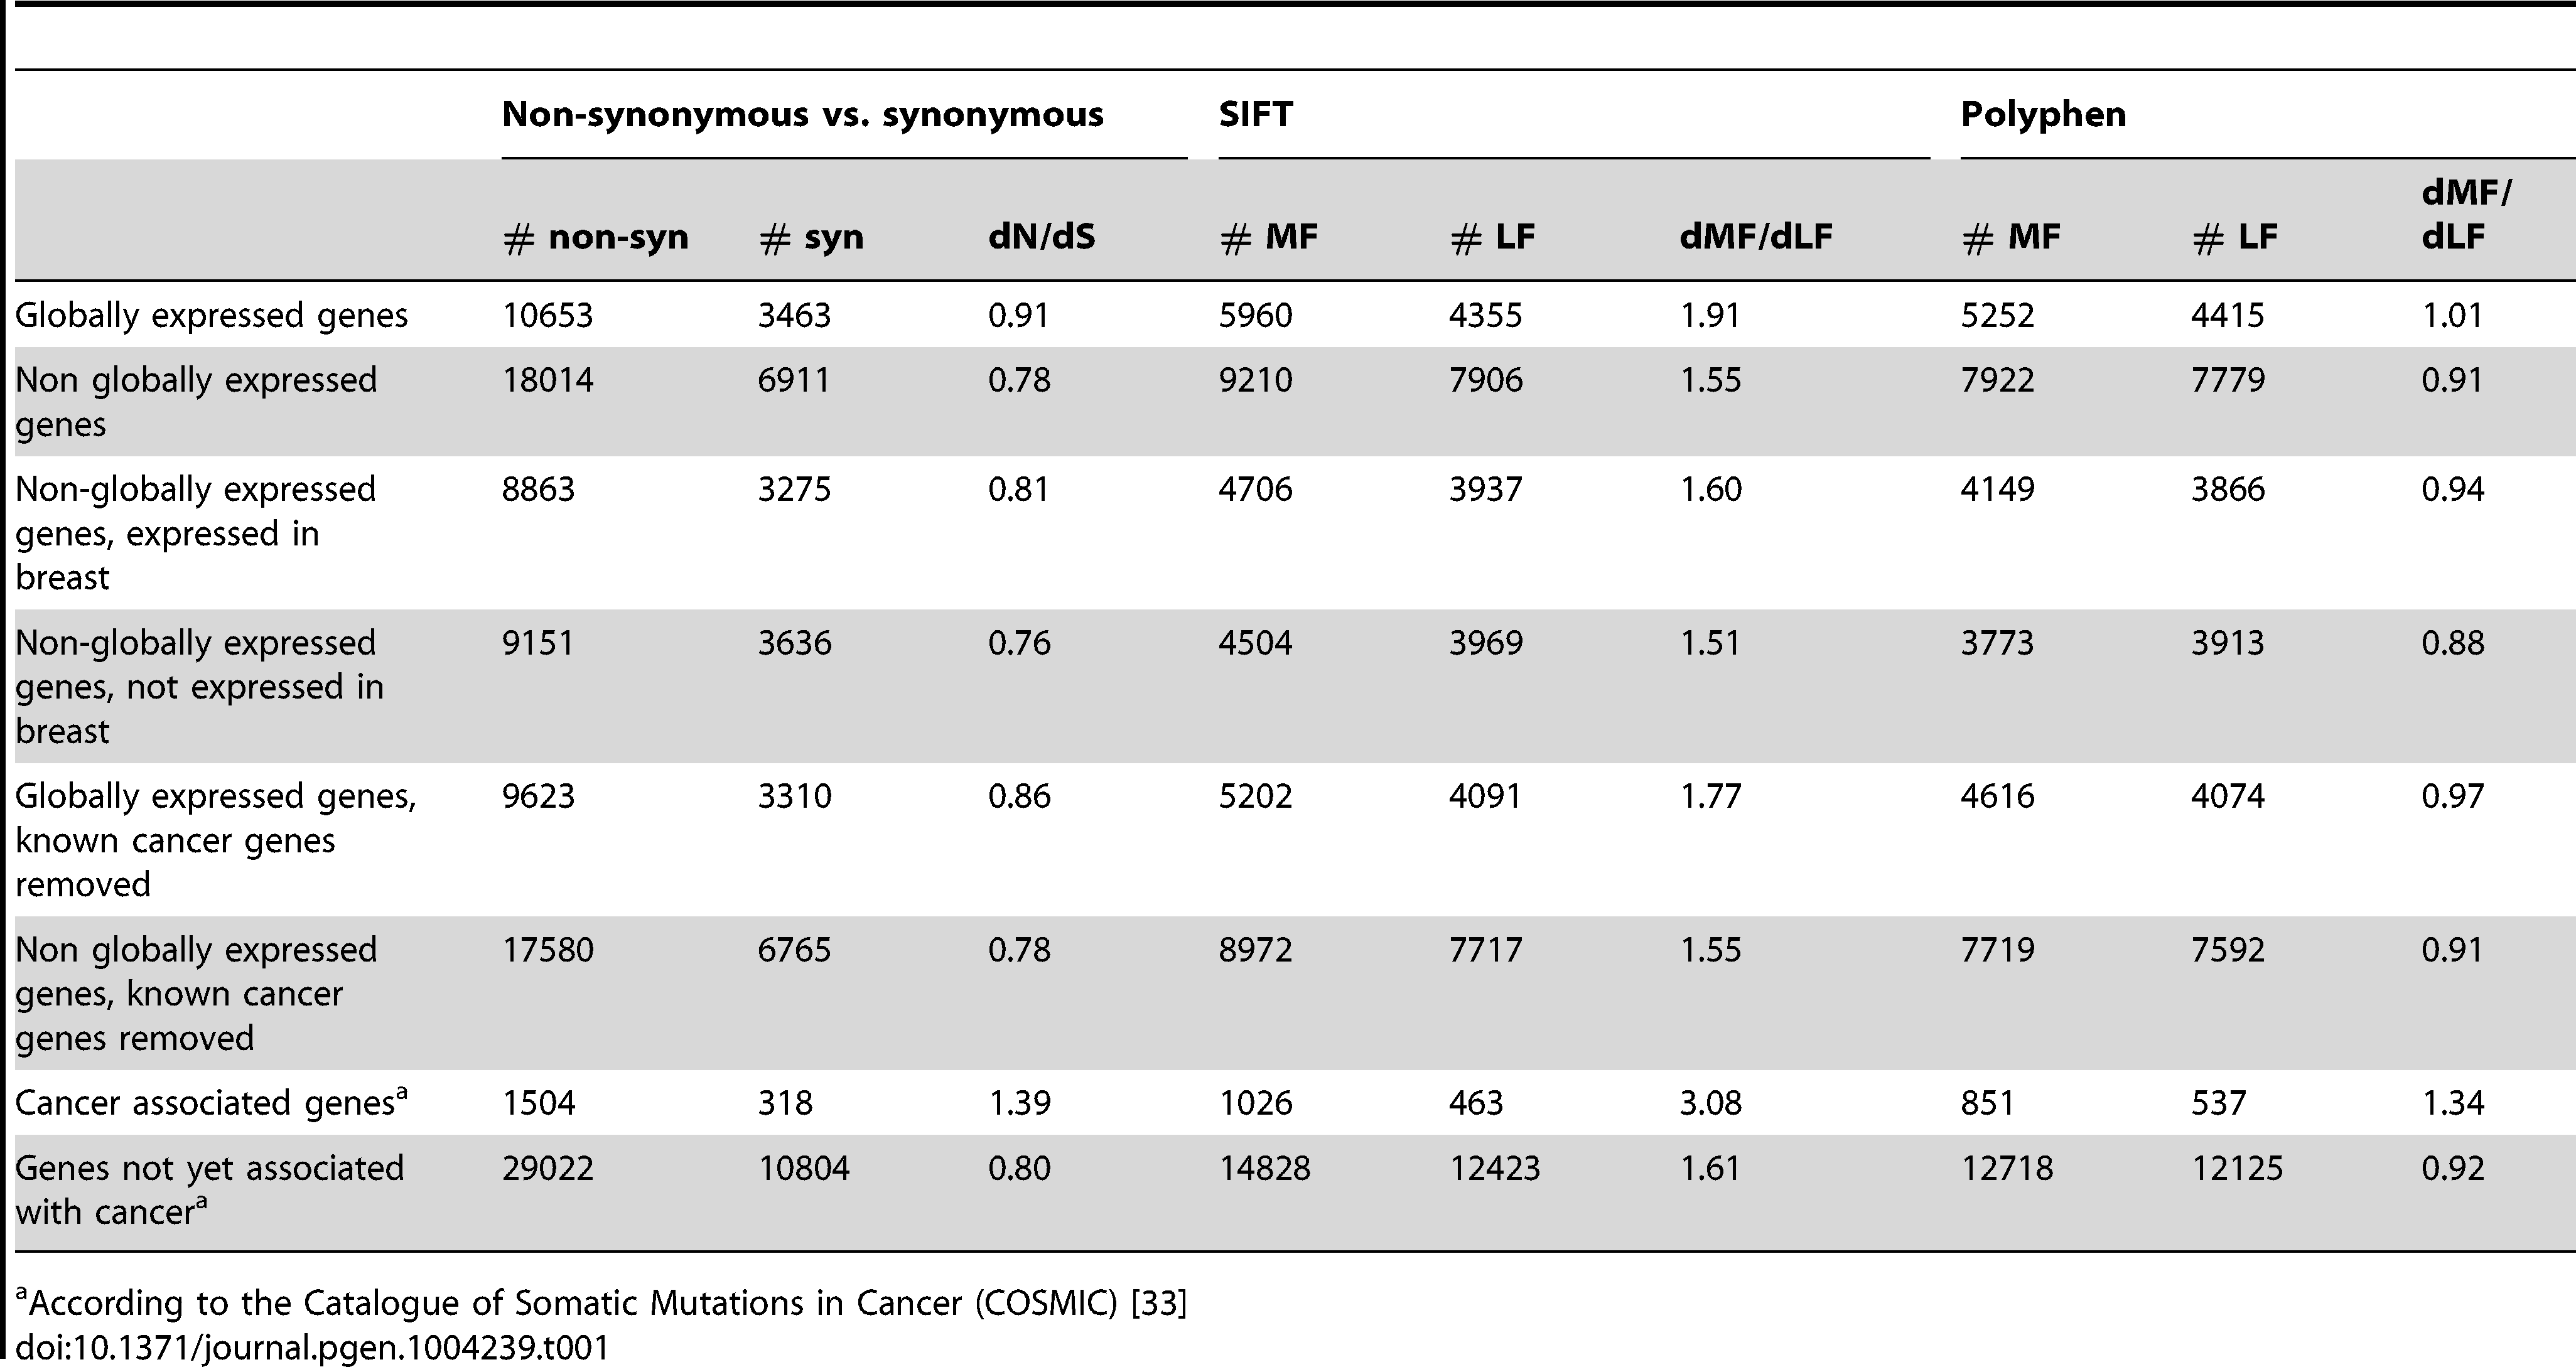 Globally expressed genes are enriched for functional BrCa somatic substitutions compared to genes that are not globally expressed.